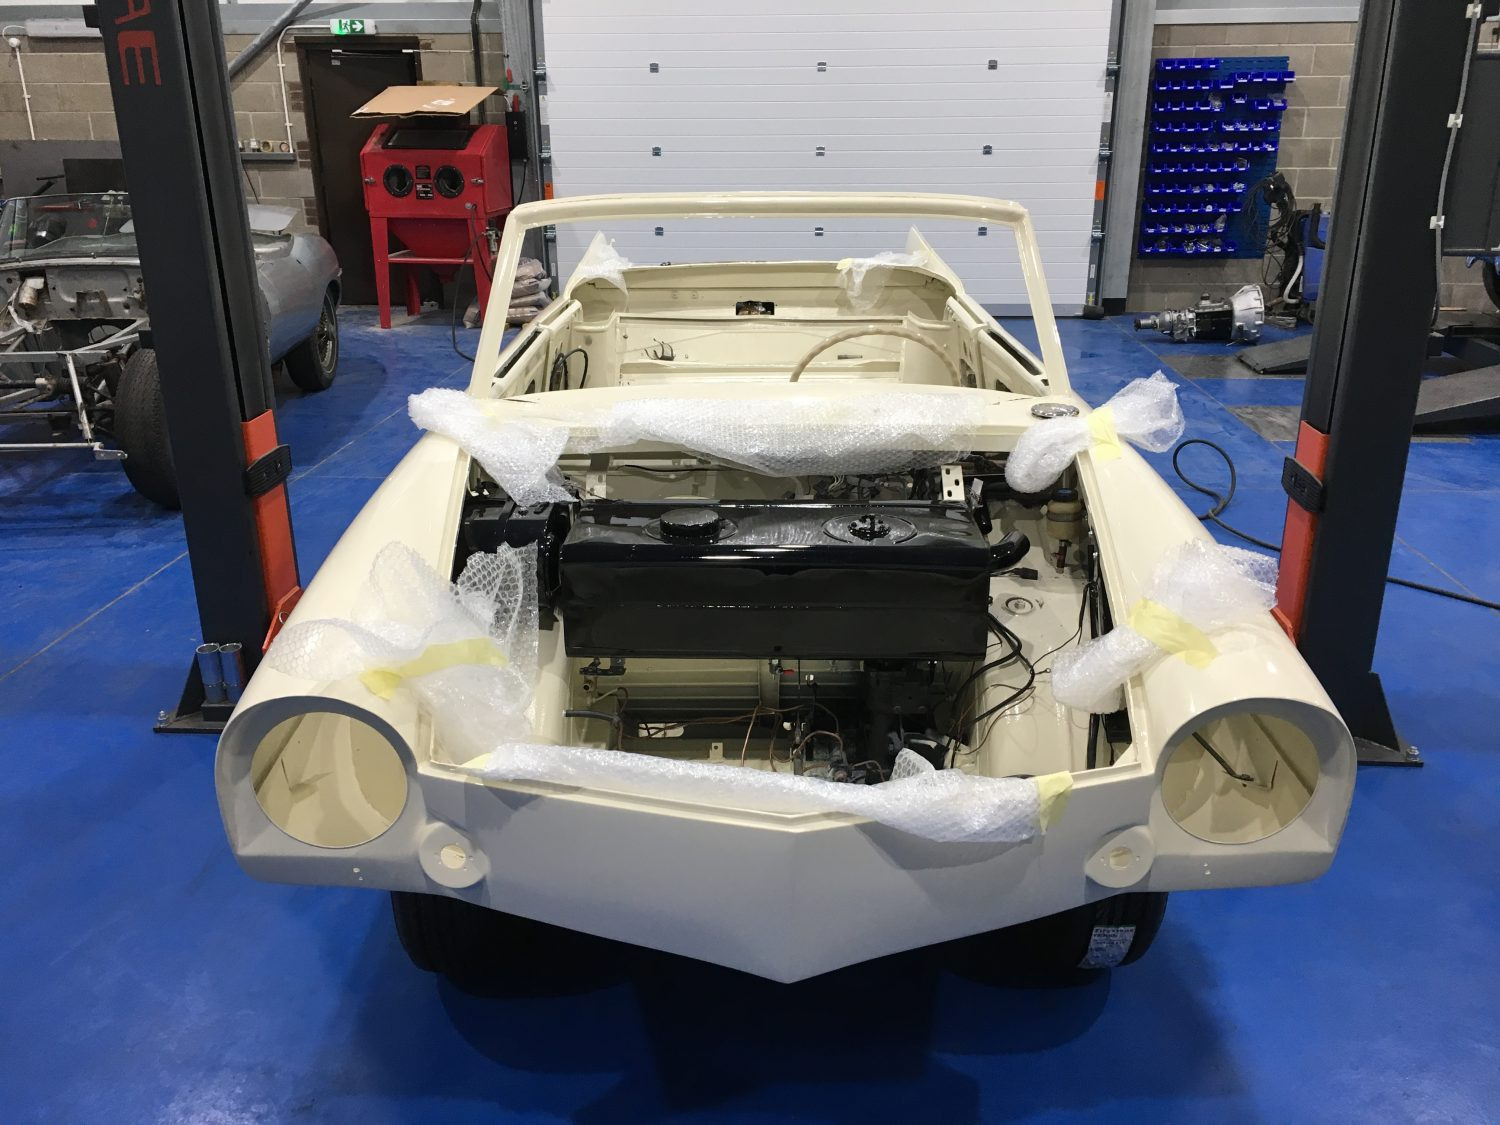 1965 Amphicar: the rebuild